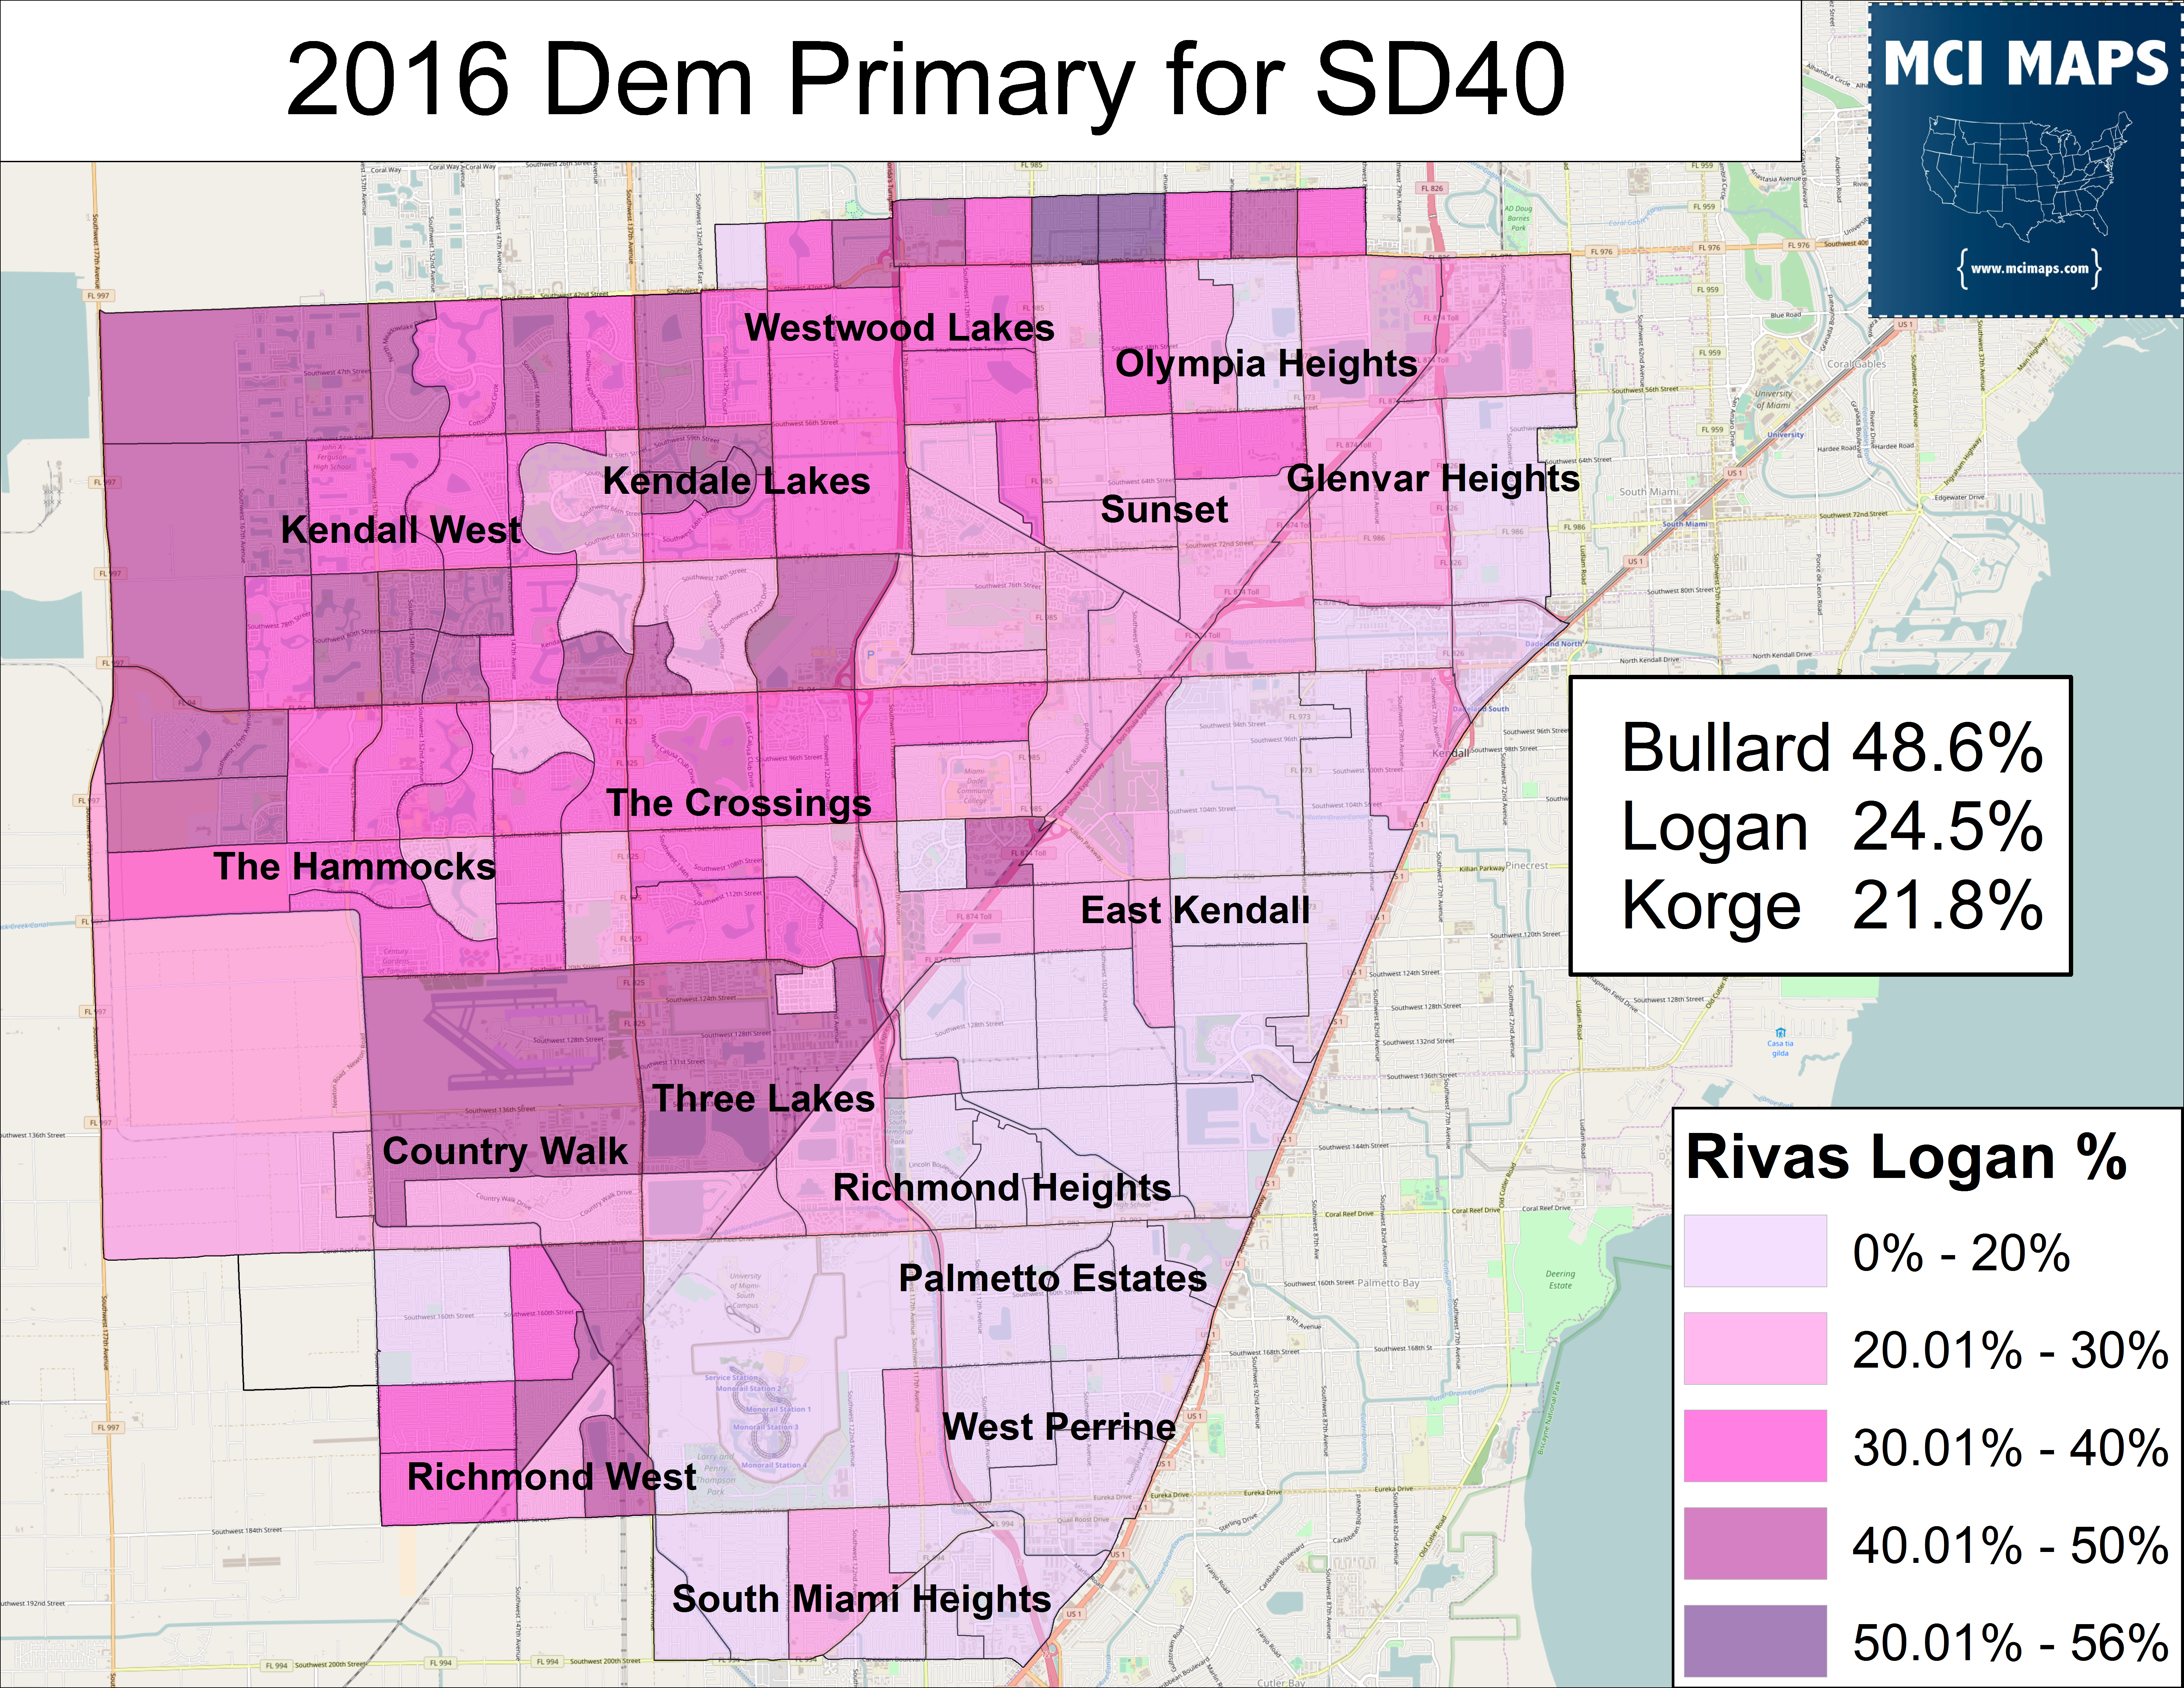 2016 August DEM Dem Primary Logan